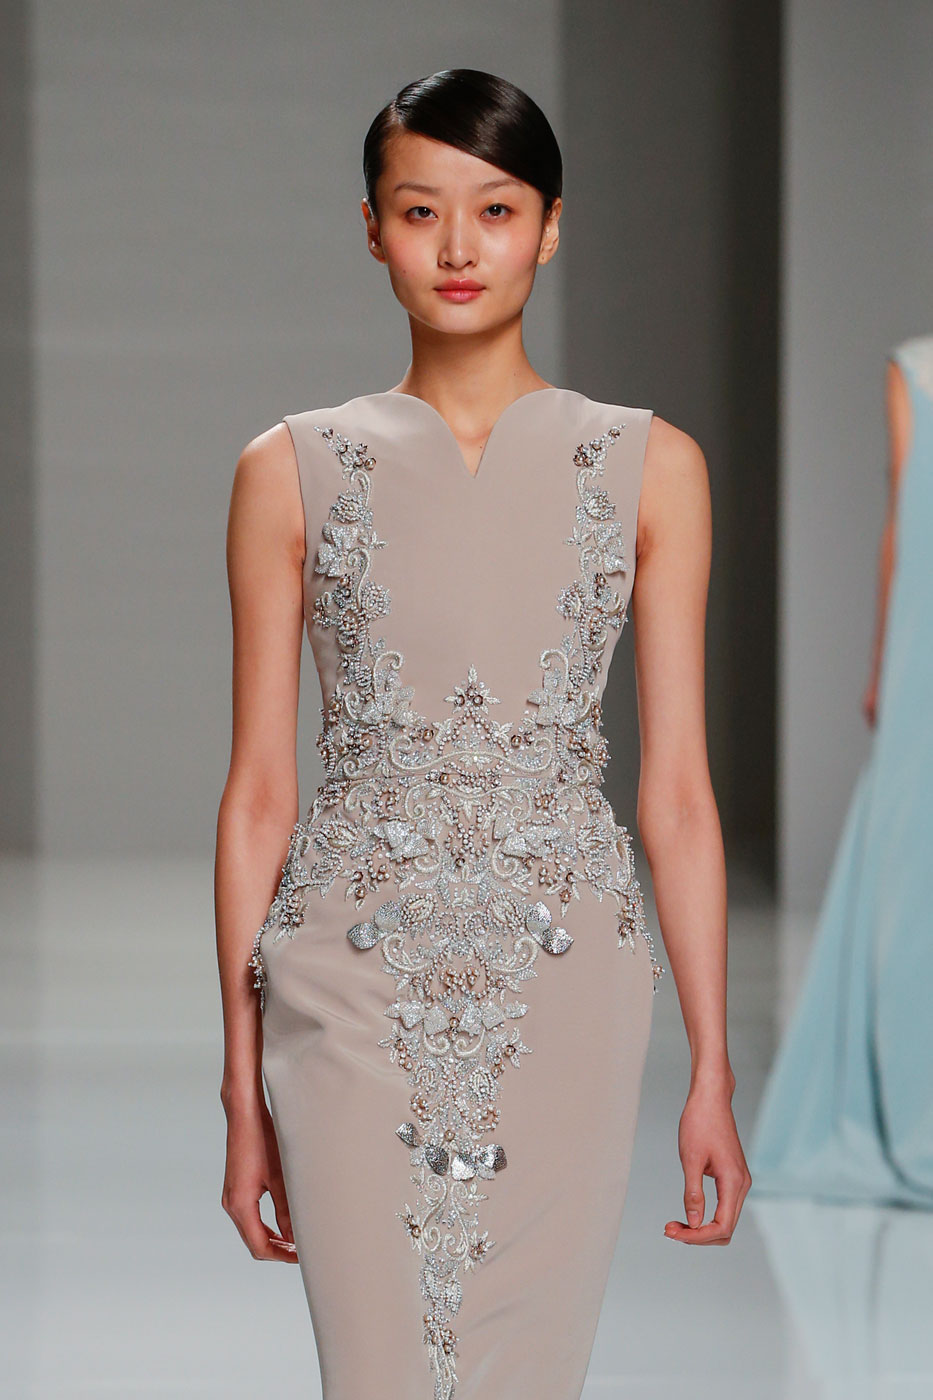 Georges-Hobeika-fashion-runway-show-haute-couture-paris-spring-2015-the-impression-40